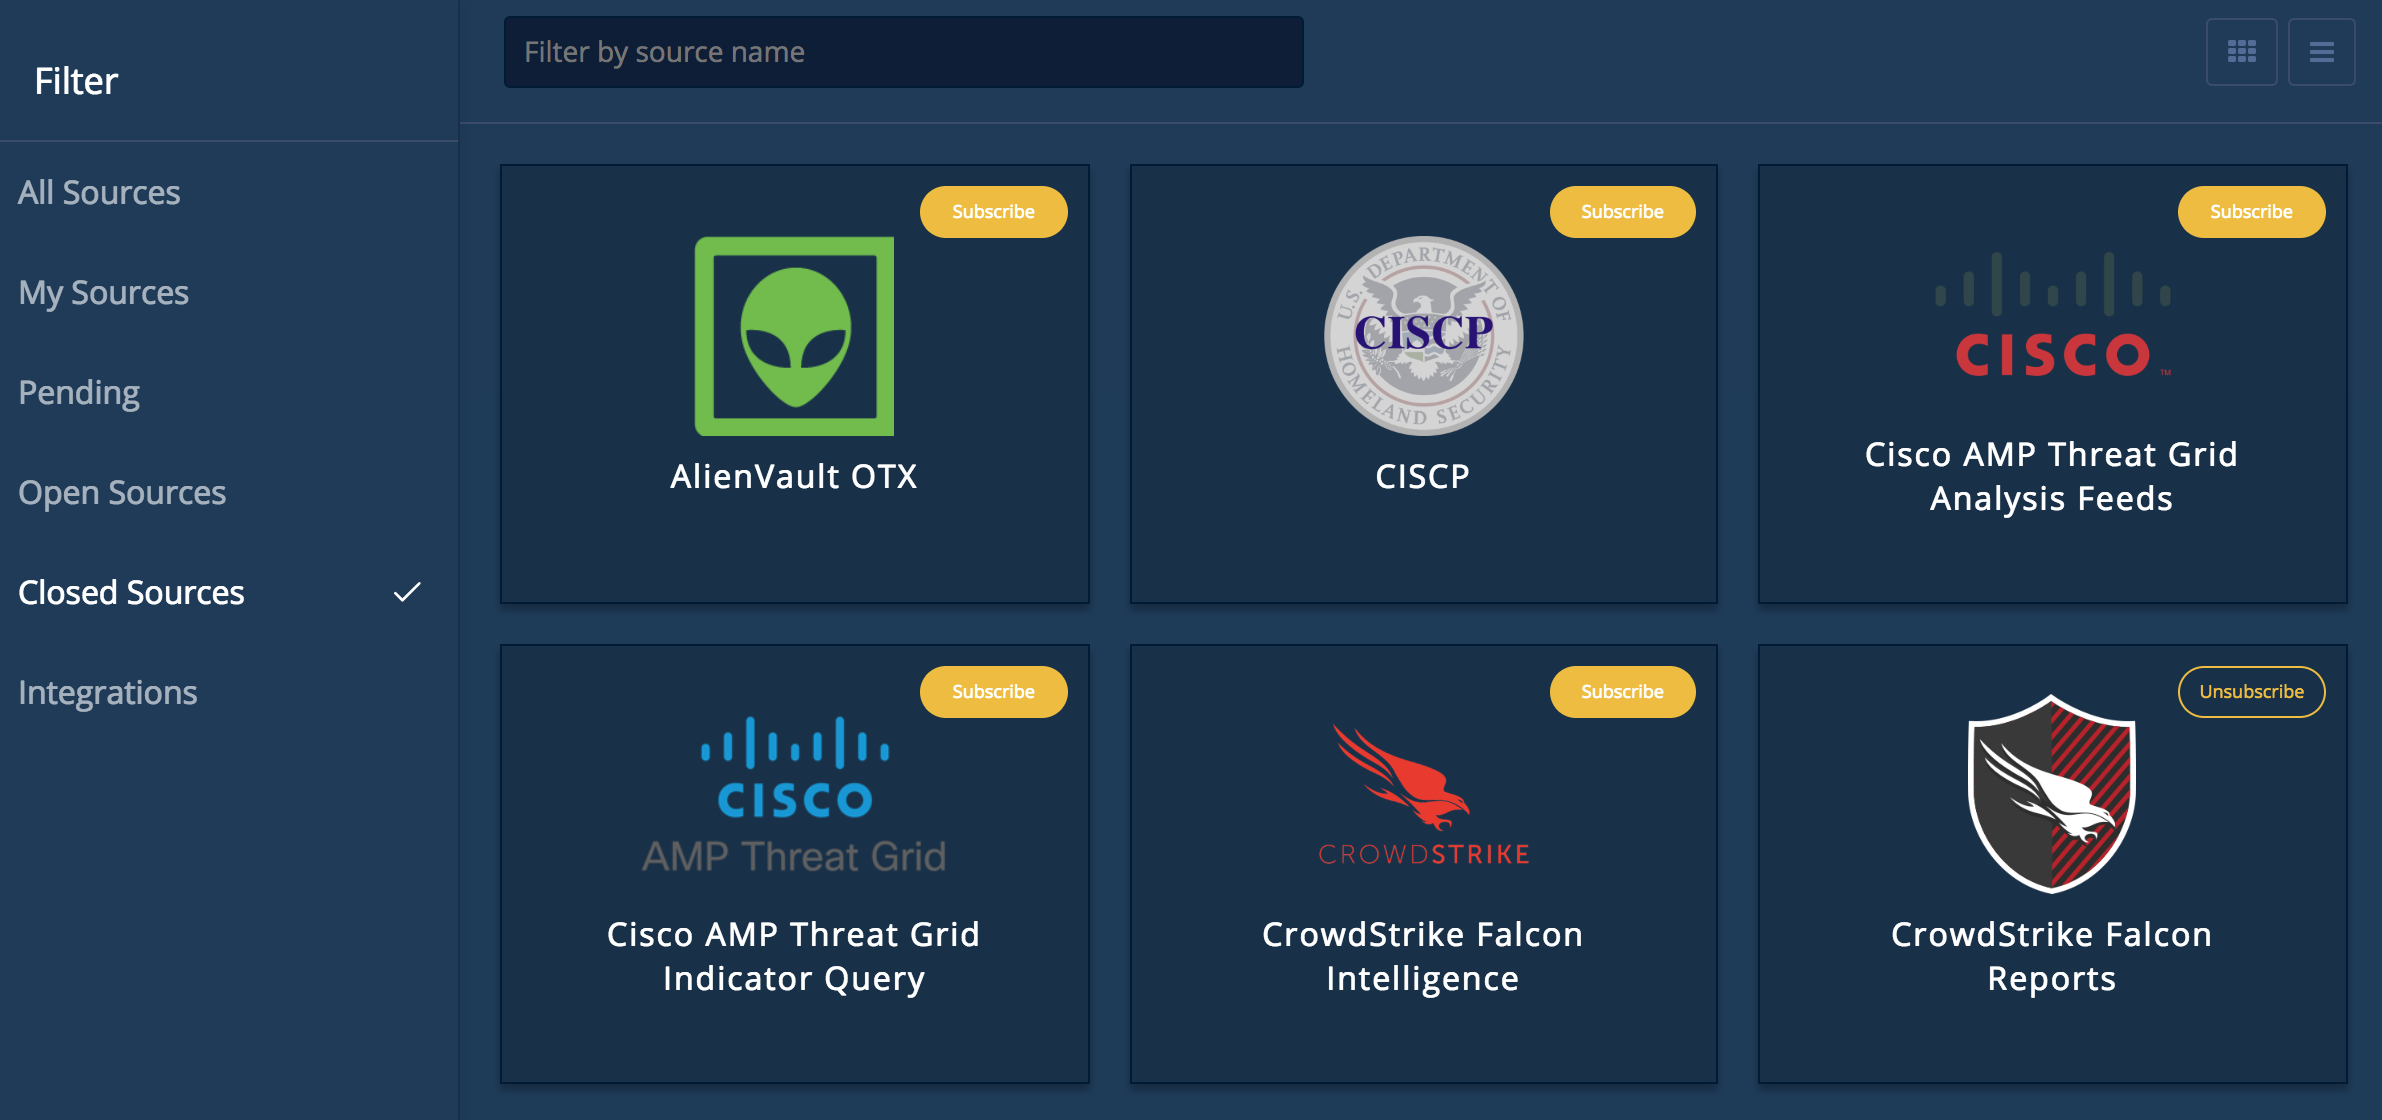 Cisco AMP Threat Grid Indicator Query - TruSTAR Knowledge Base